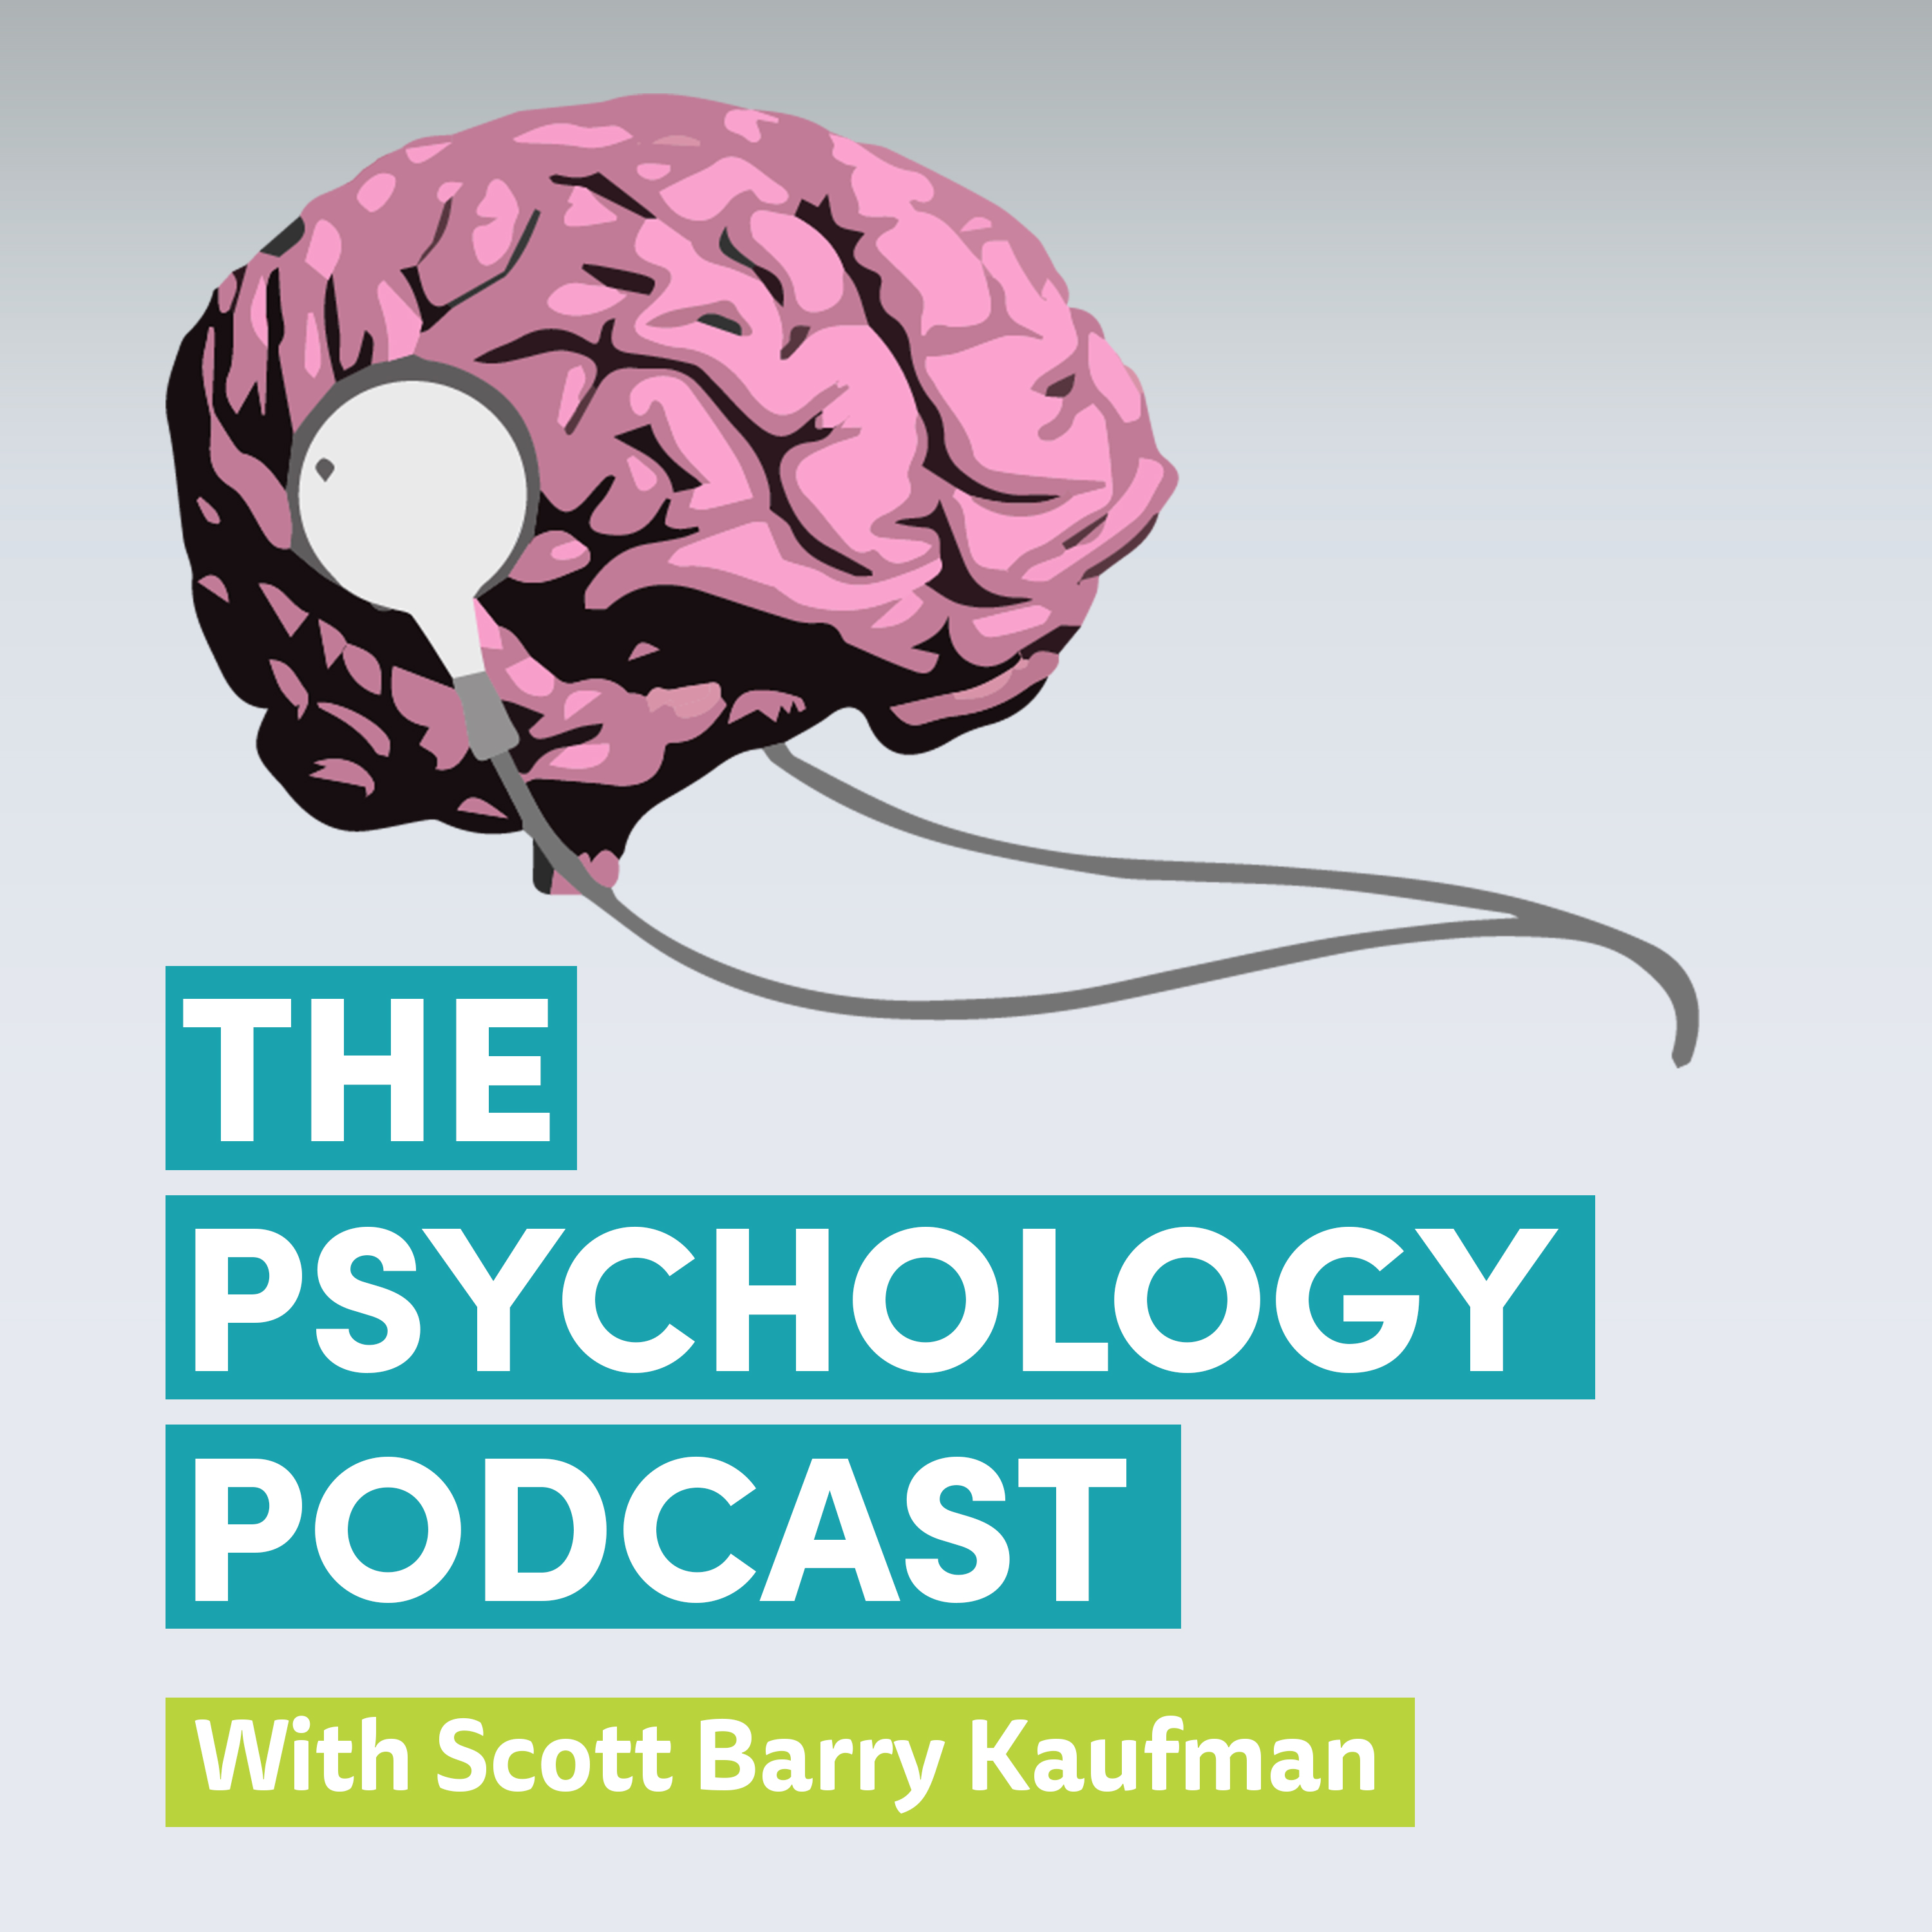 podcast cover of The Psychology Podcast by Scott Barry Kaufman